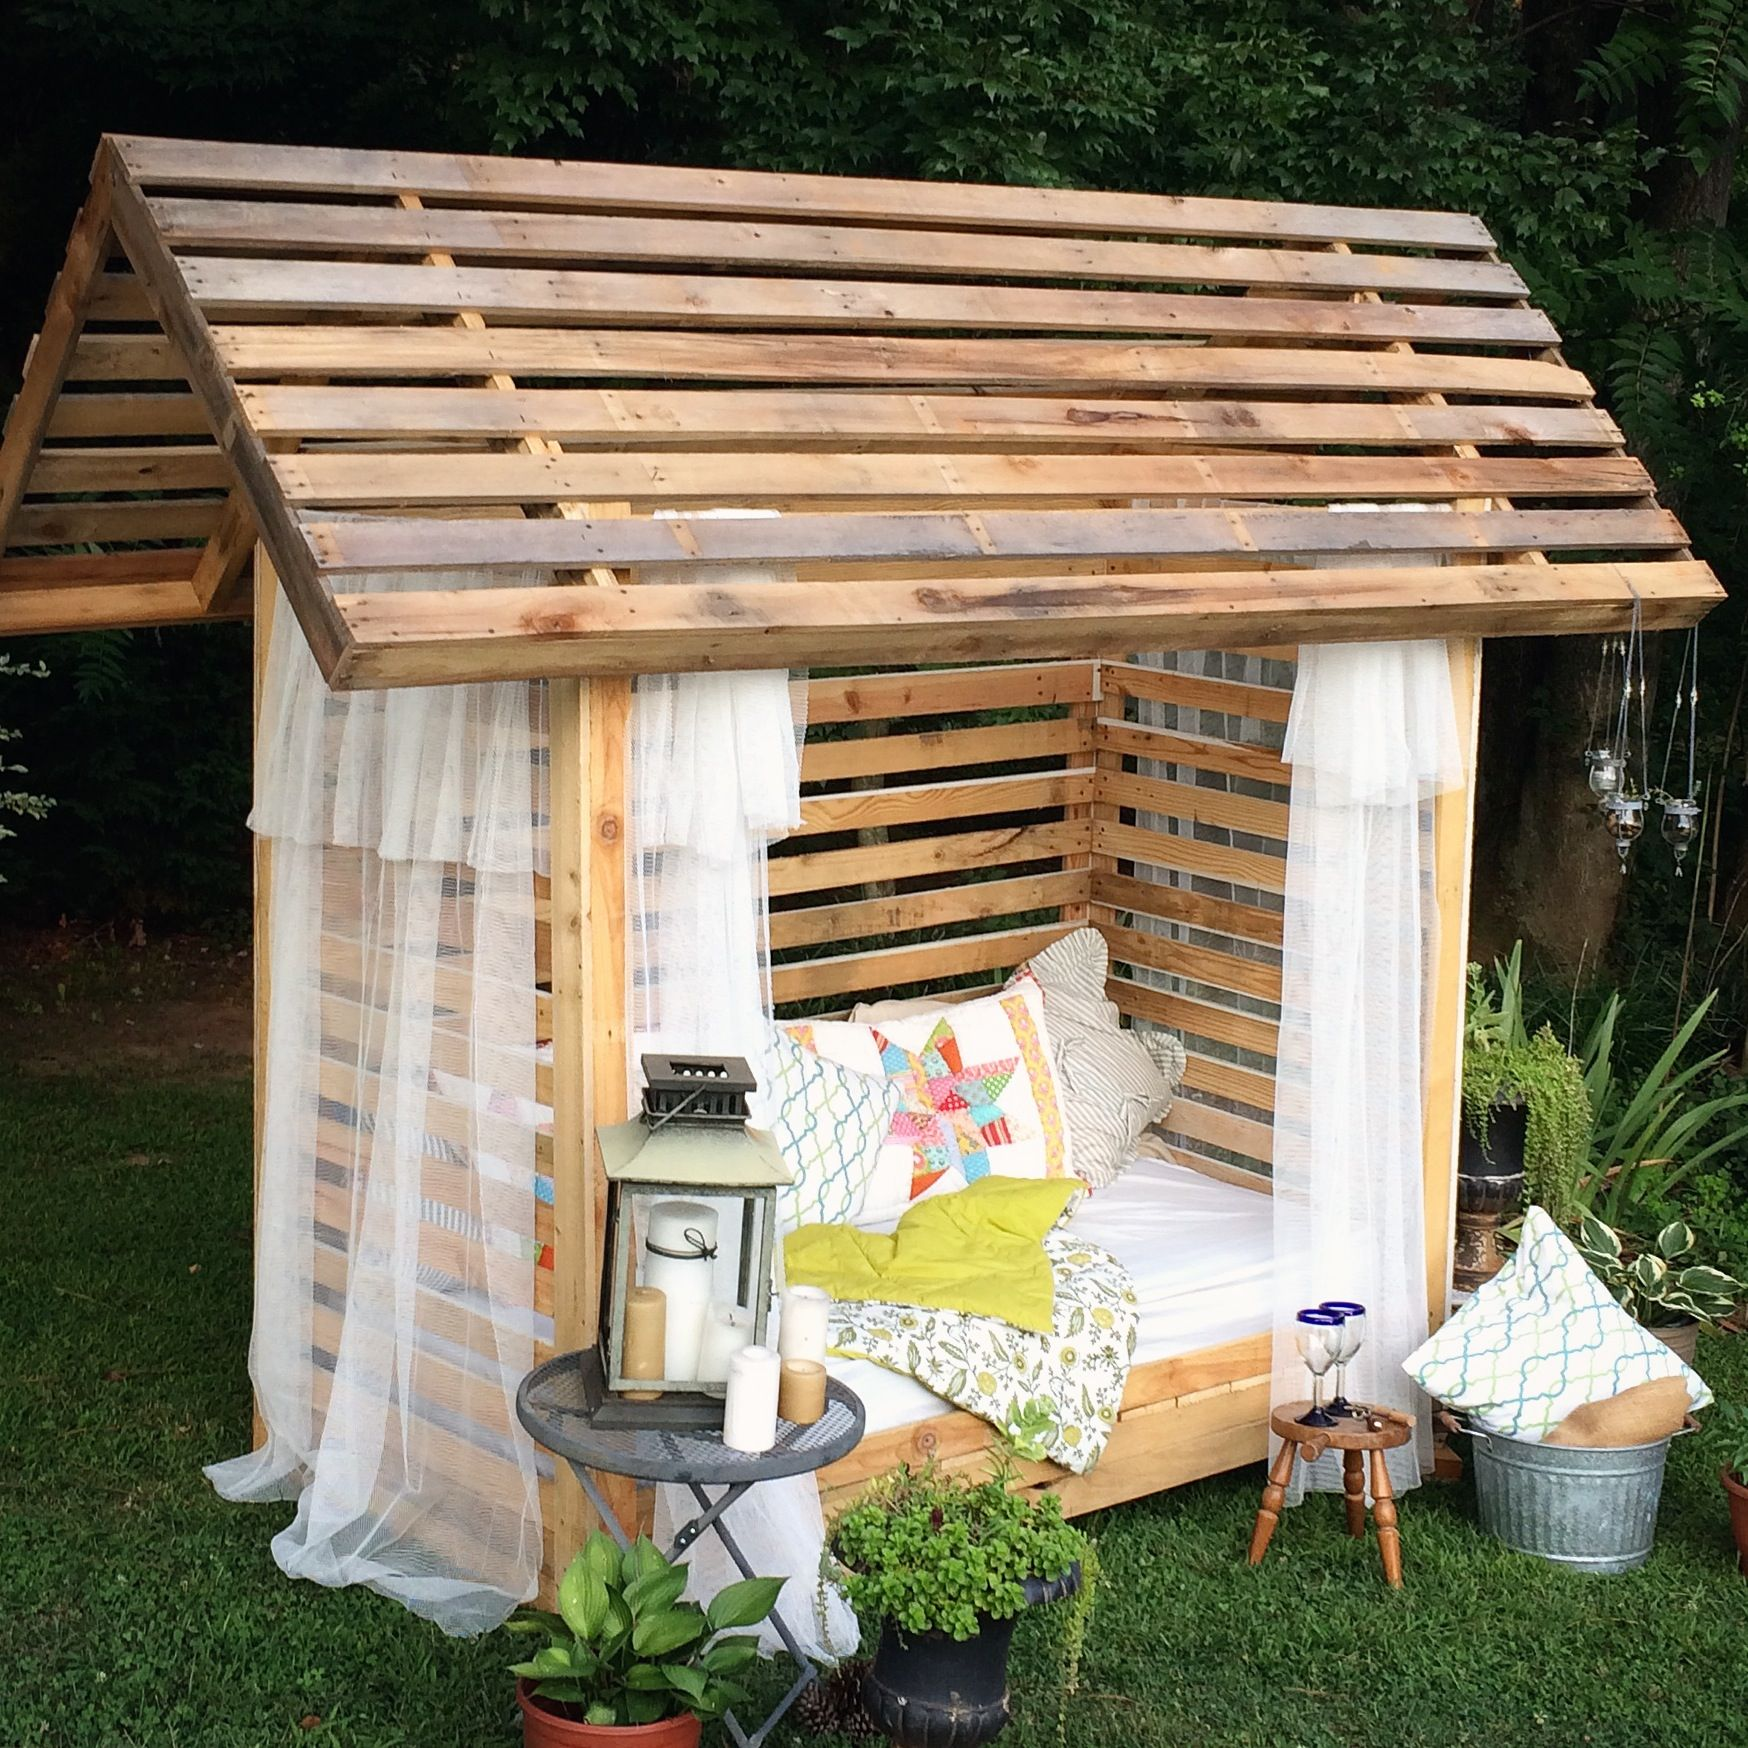 8 Fantastic DIY Outdoor Cabana Lounge Ideas to Try ... on Backyard Nook Ideas id=92610